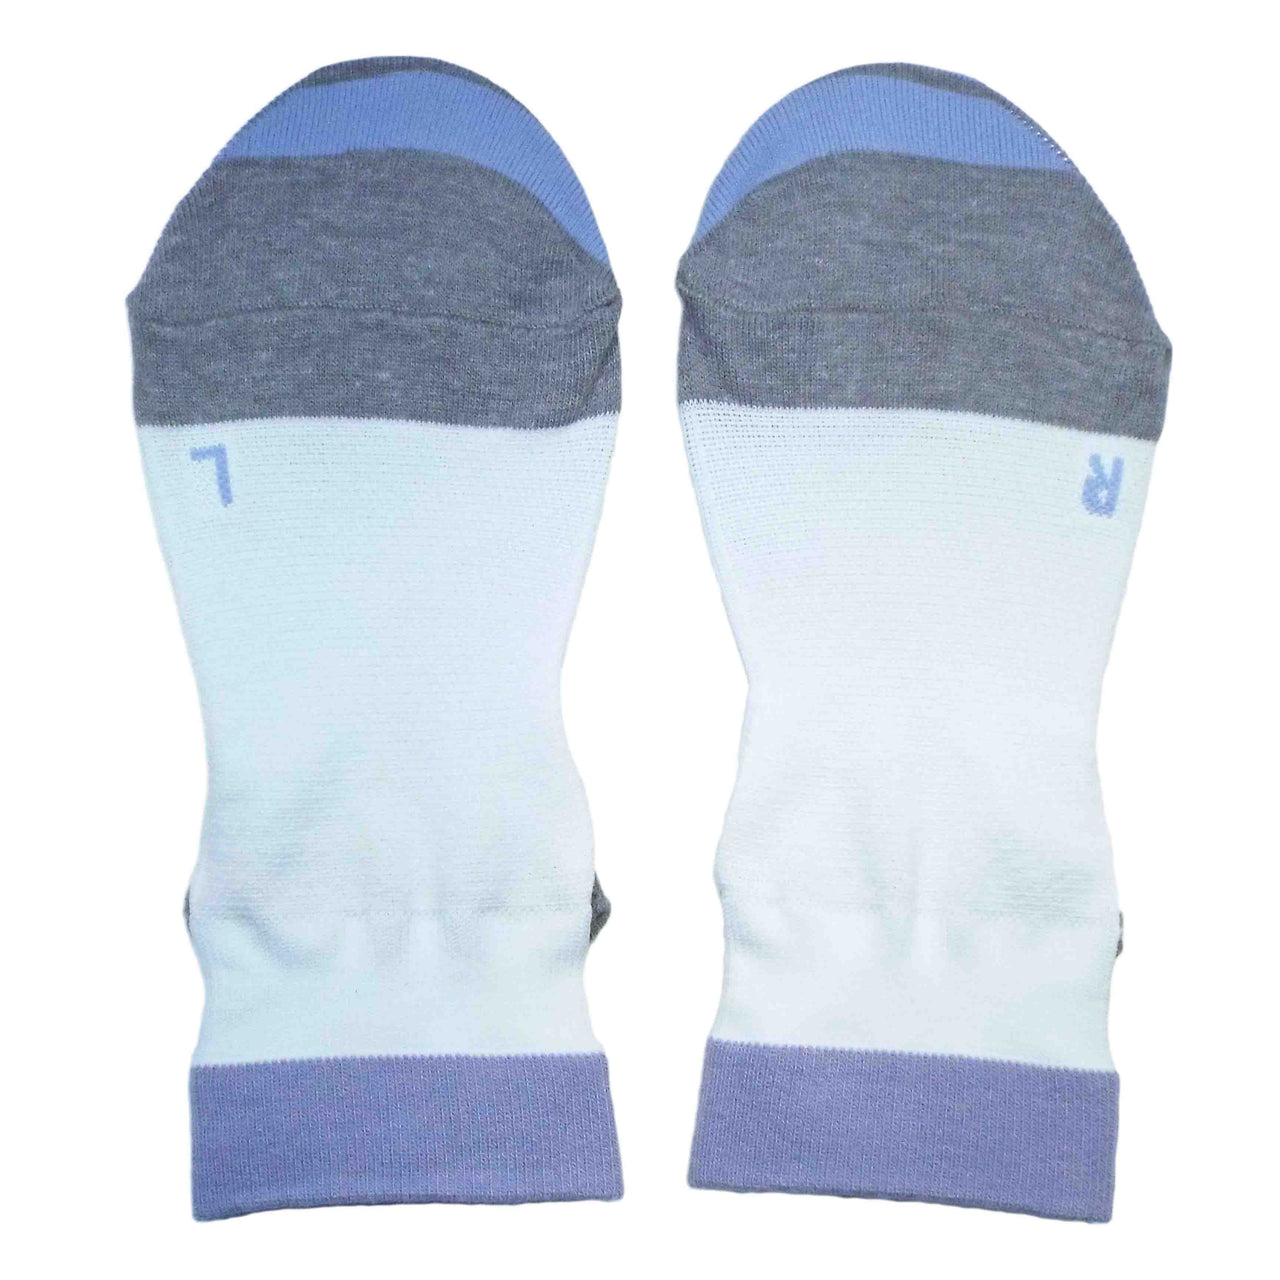 Arch Support Ankle Running Socks with Grips for Women | White - CHERRYSTONE by MARKET TO JAPAN LLC